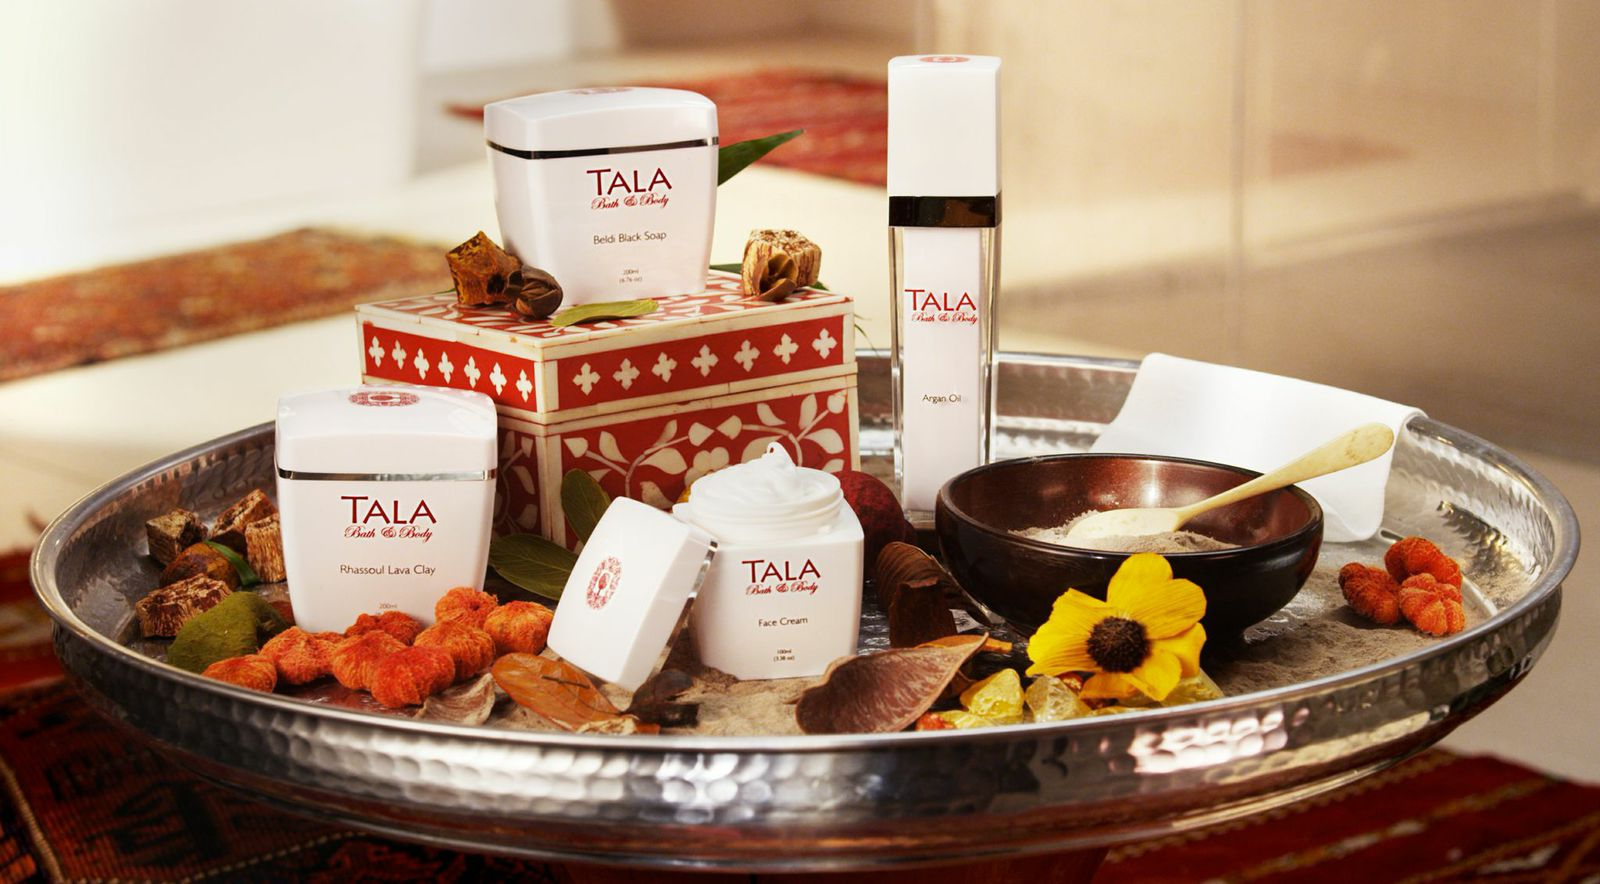 Tala-an authentic at home hammam experience, via Mr. Steam